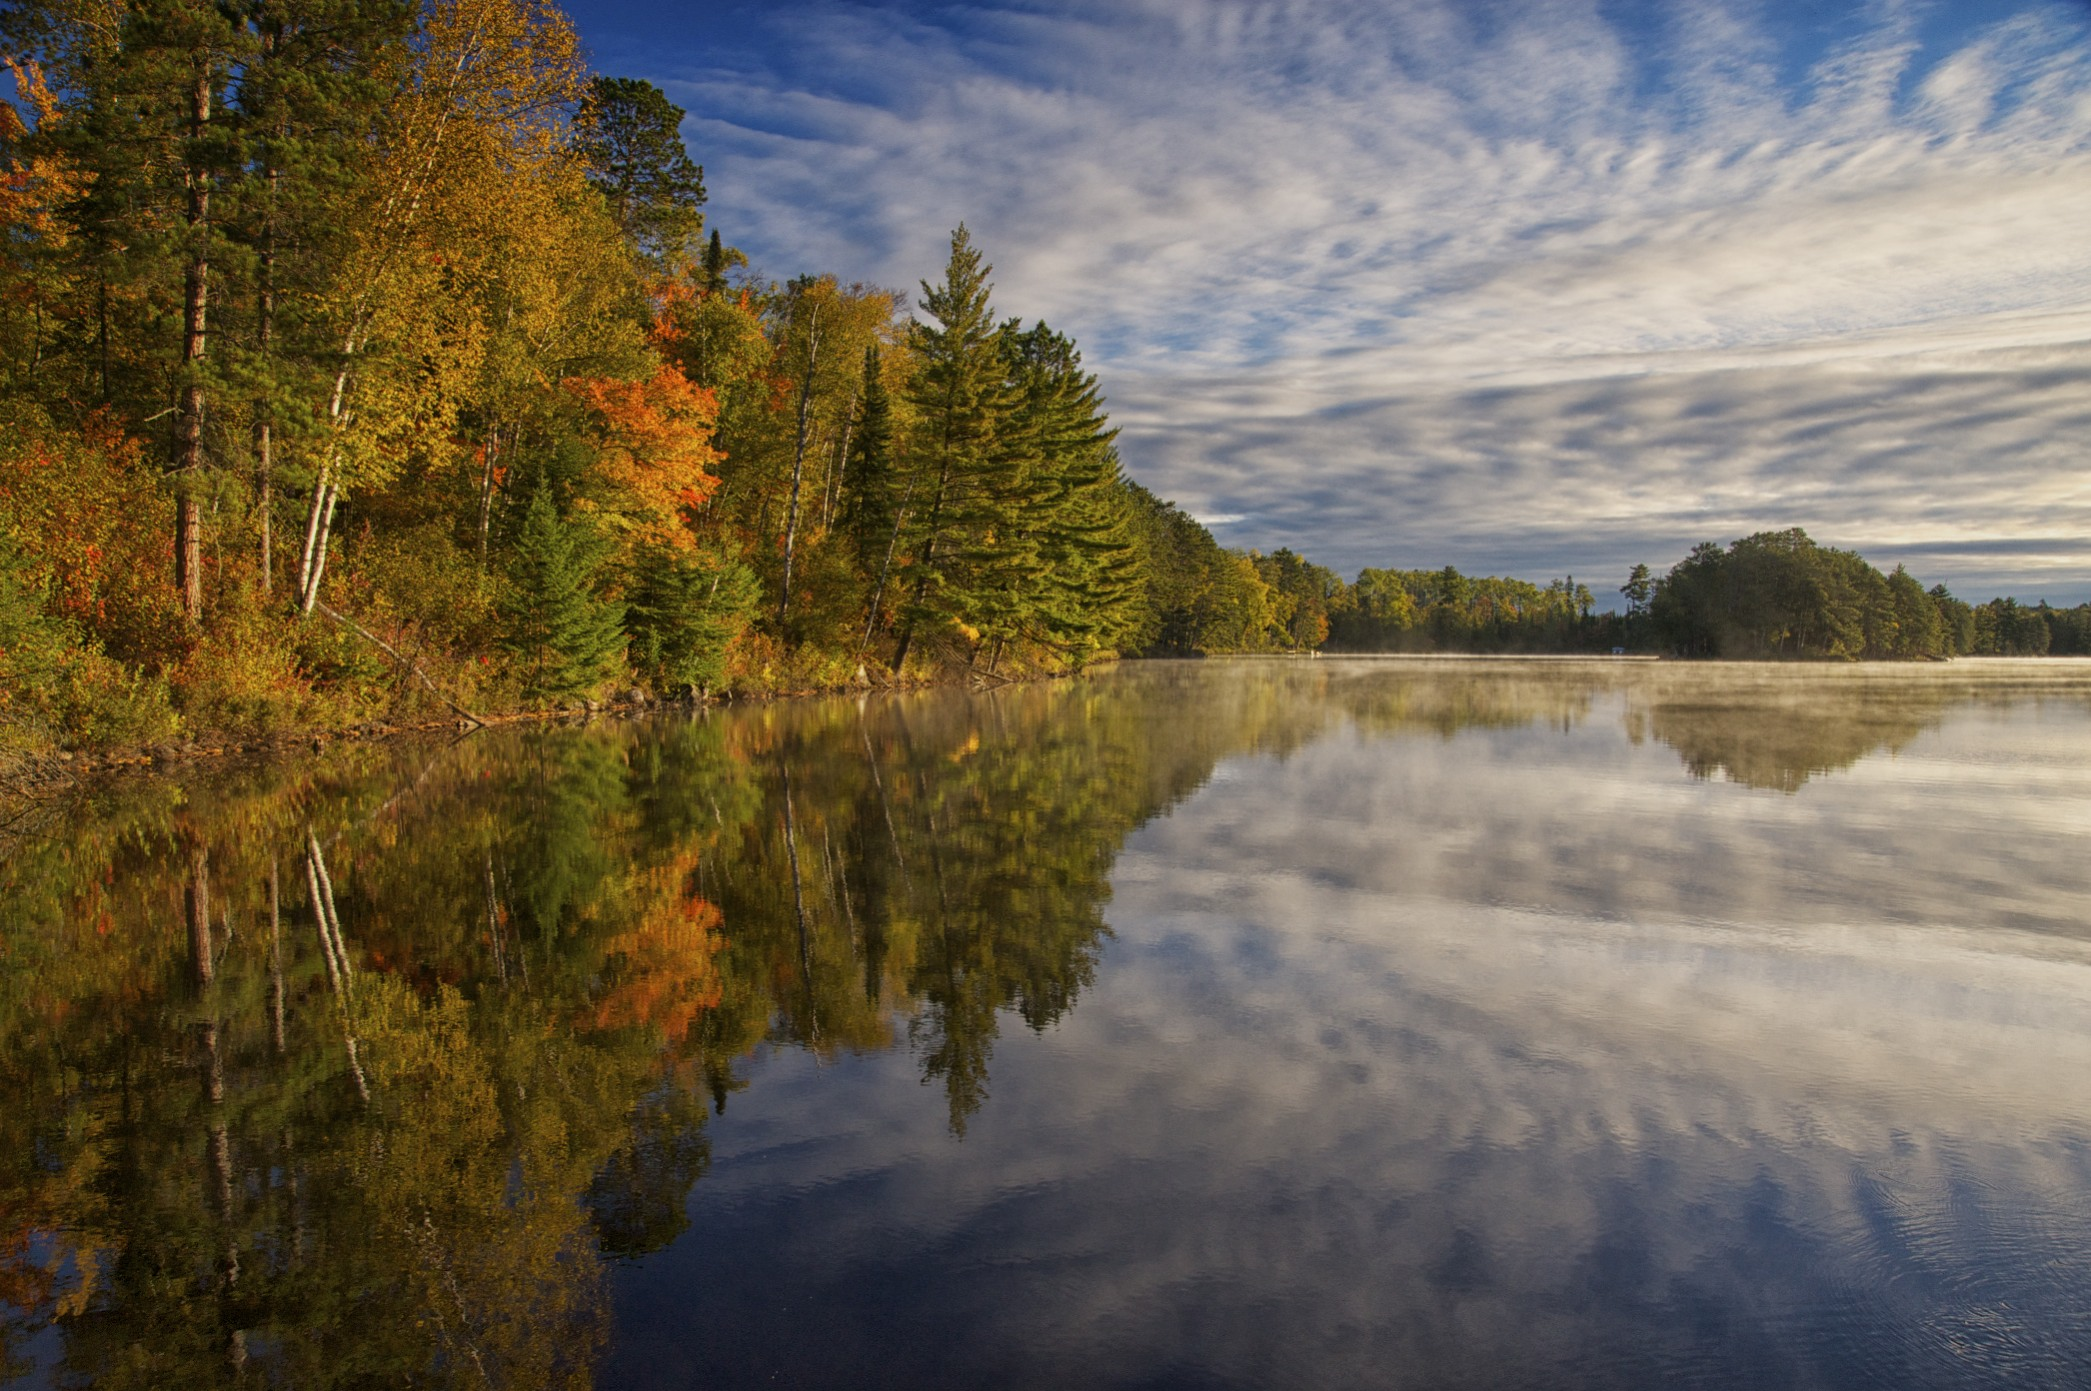 Image of farm lake surrounded by trees. Image by Jim Liestman